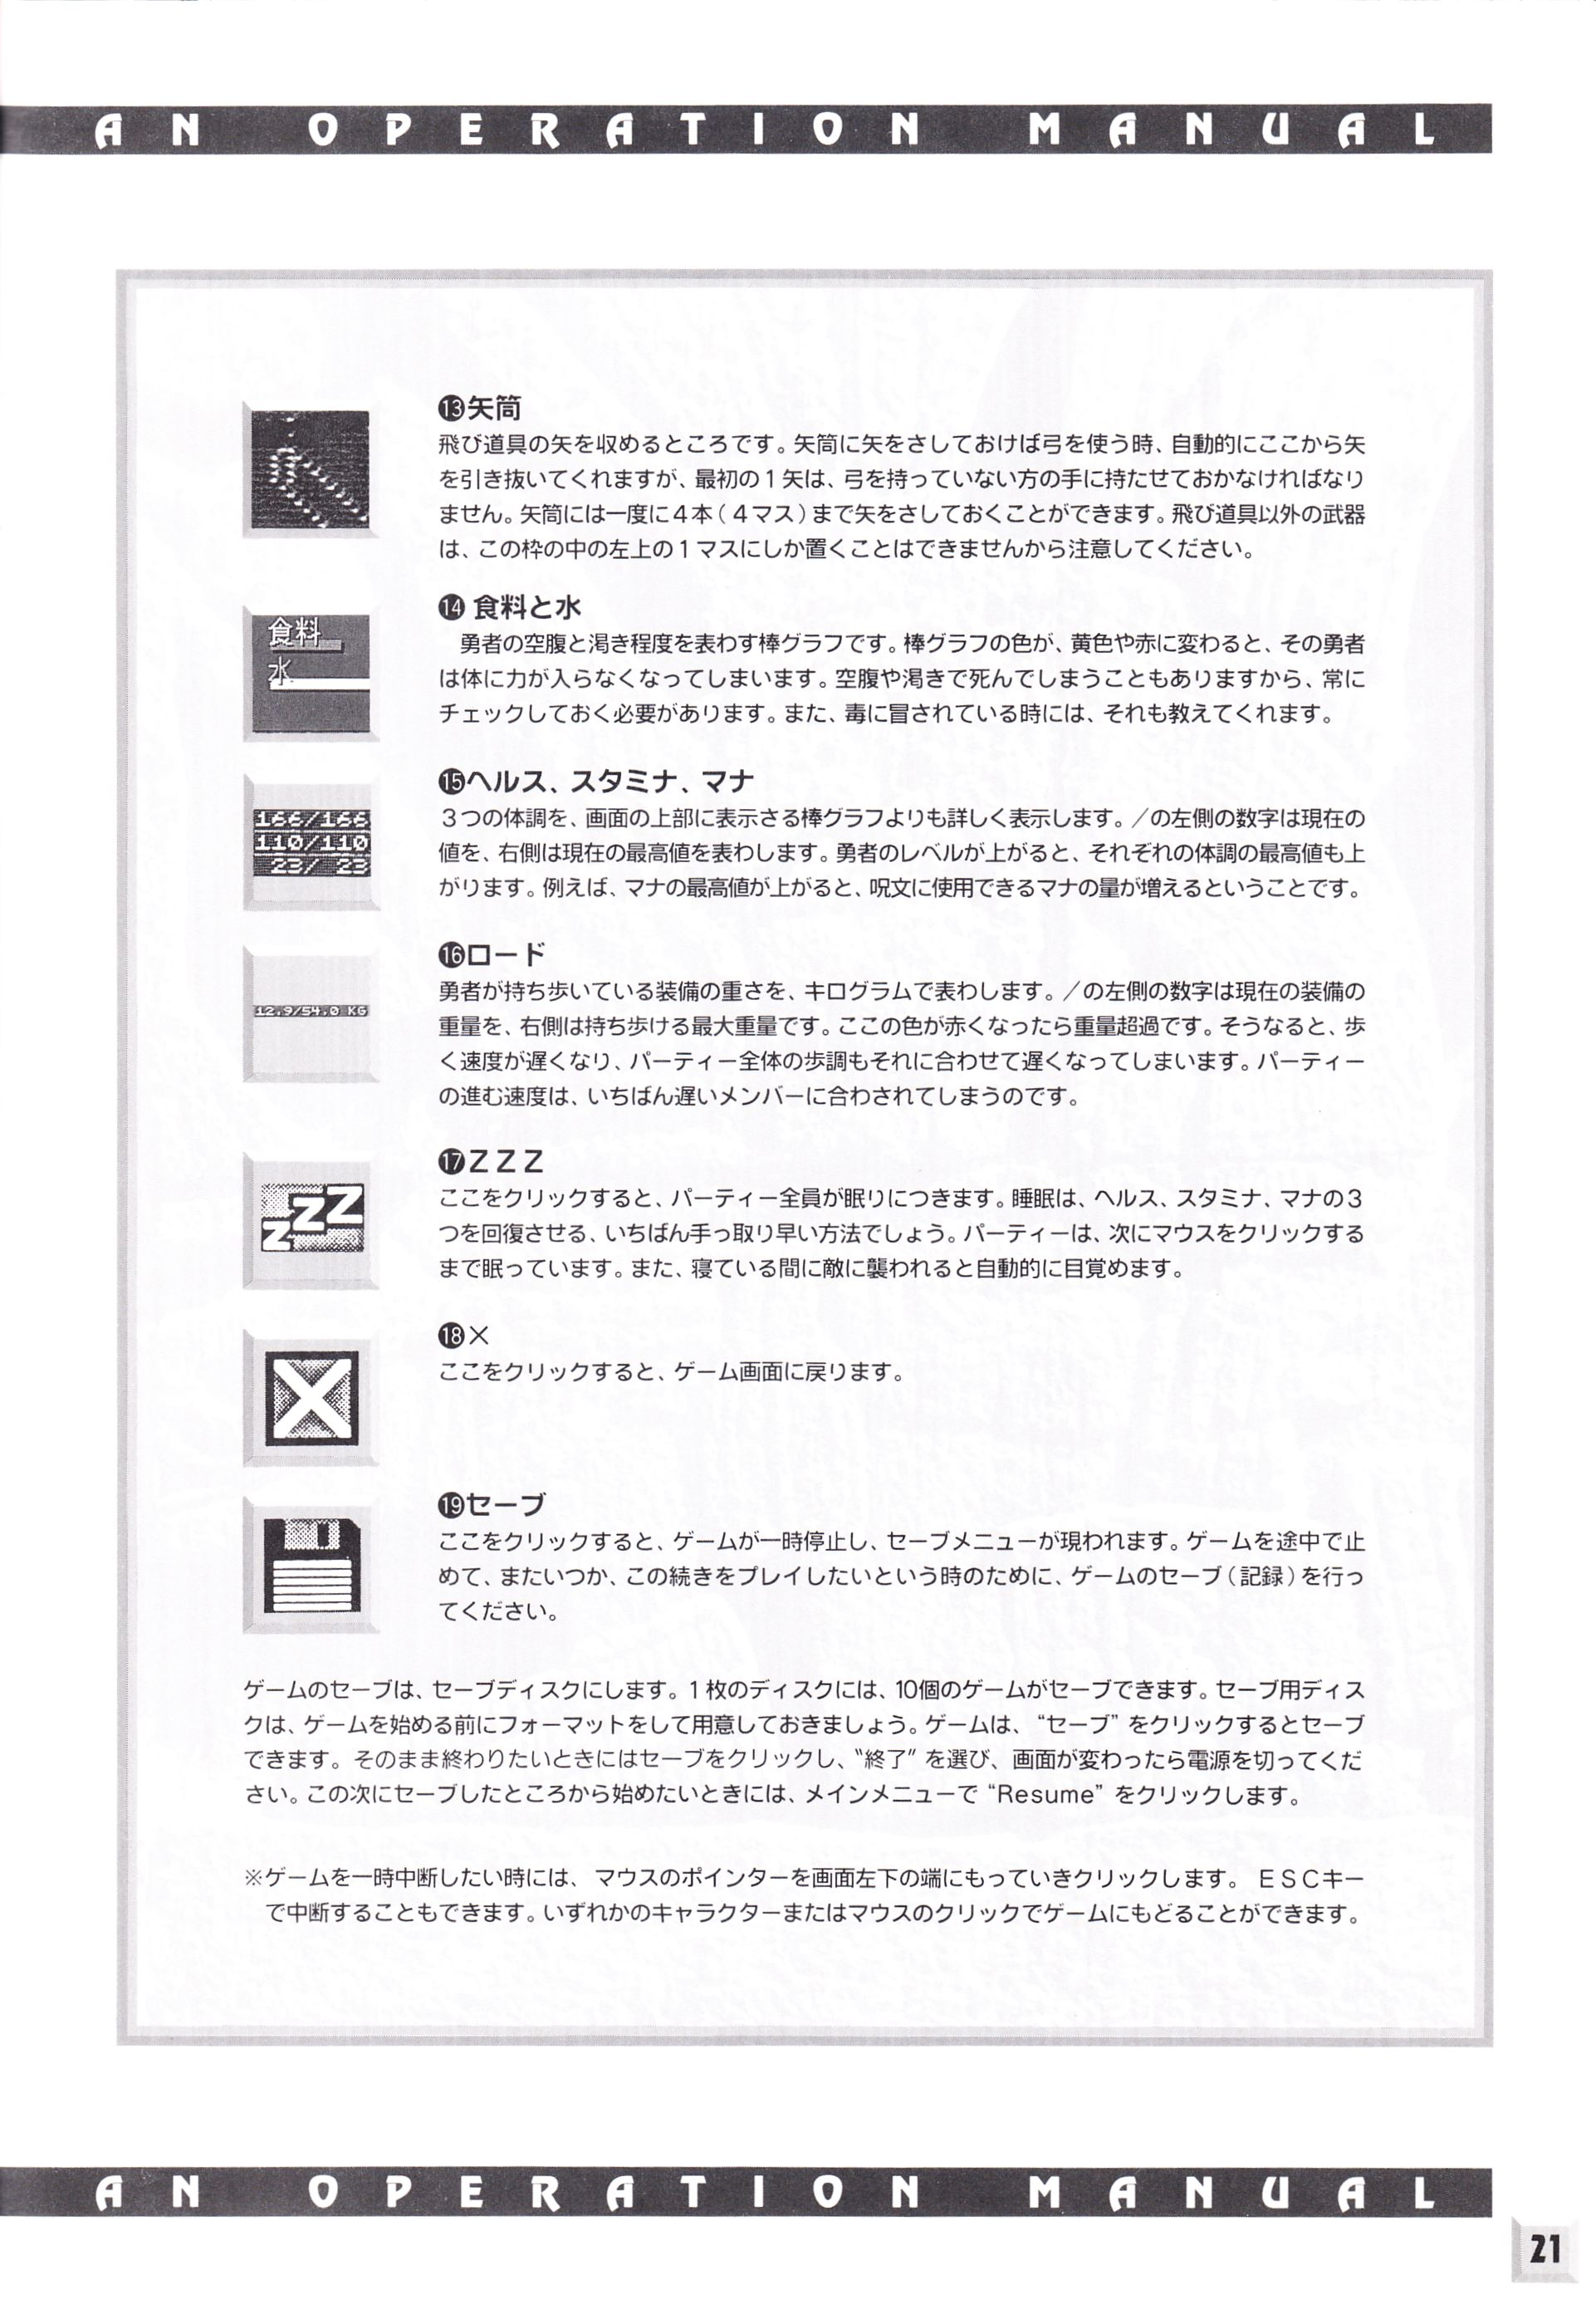 Game - Dungeon Master II - JP - FM Towns - An Operation Manual - Page 023 - Scan